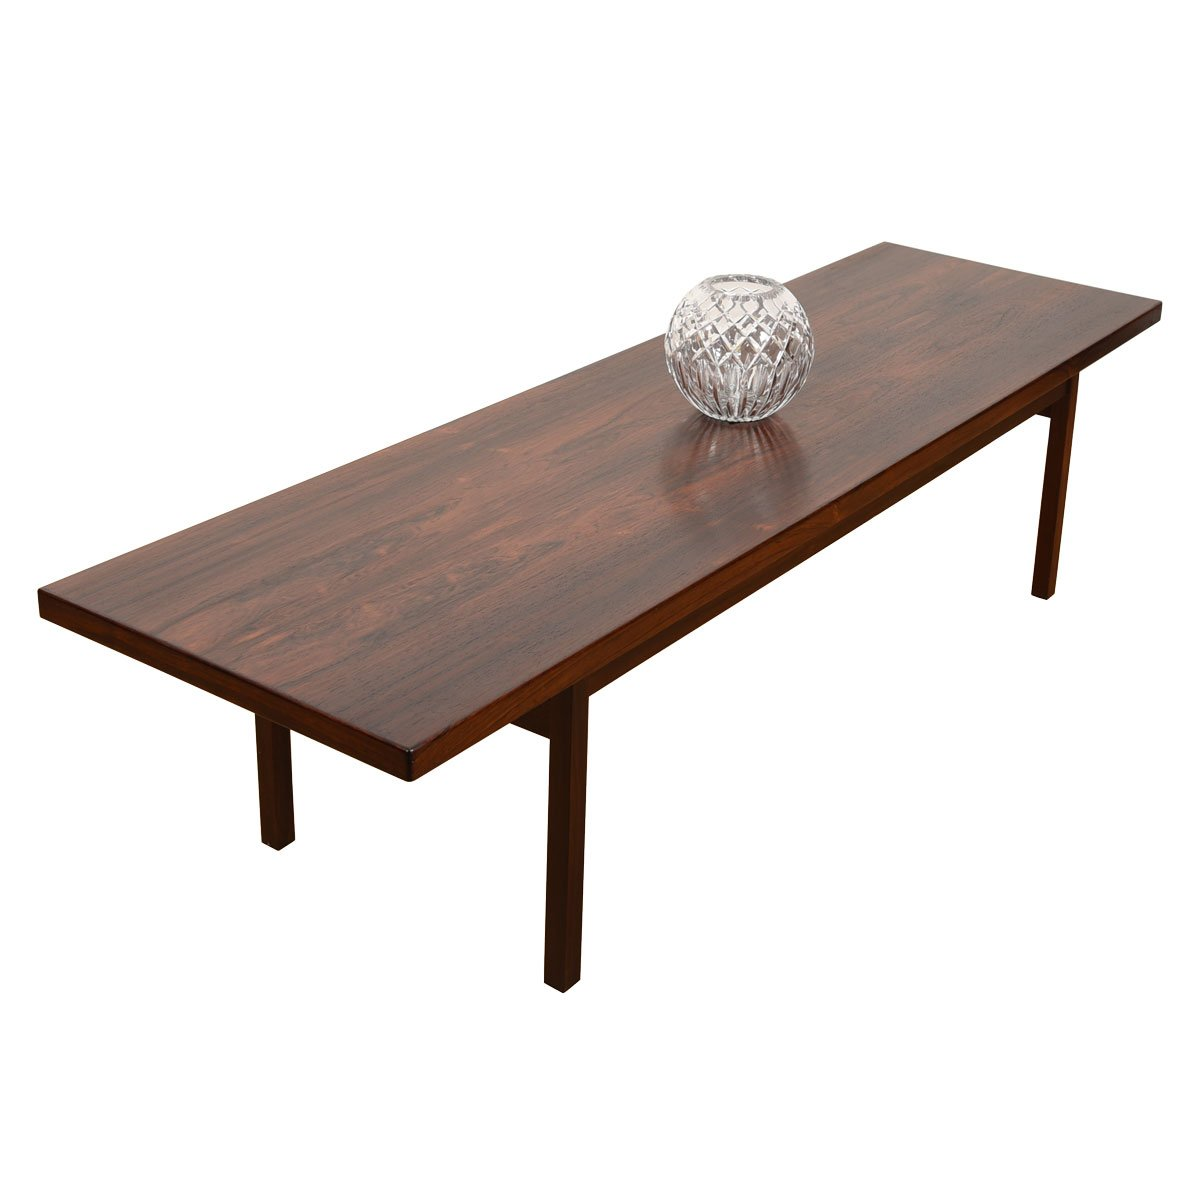 Long Danish Modern Rosewood Coffee Table.